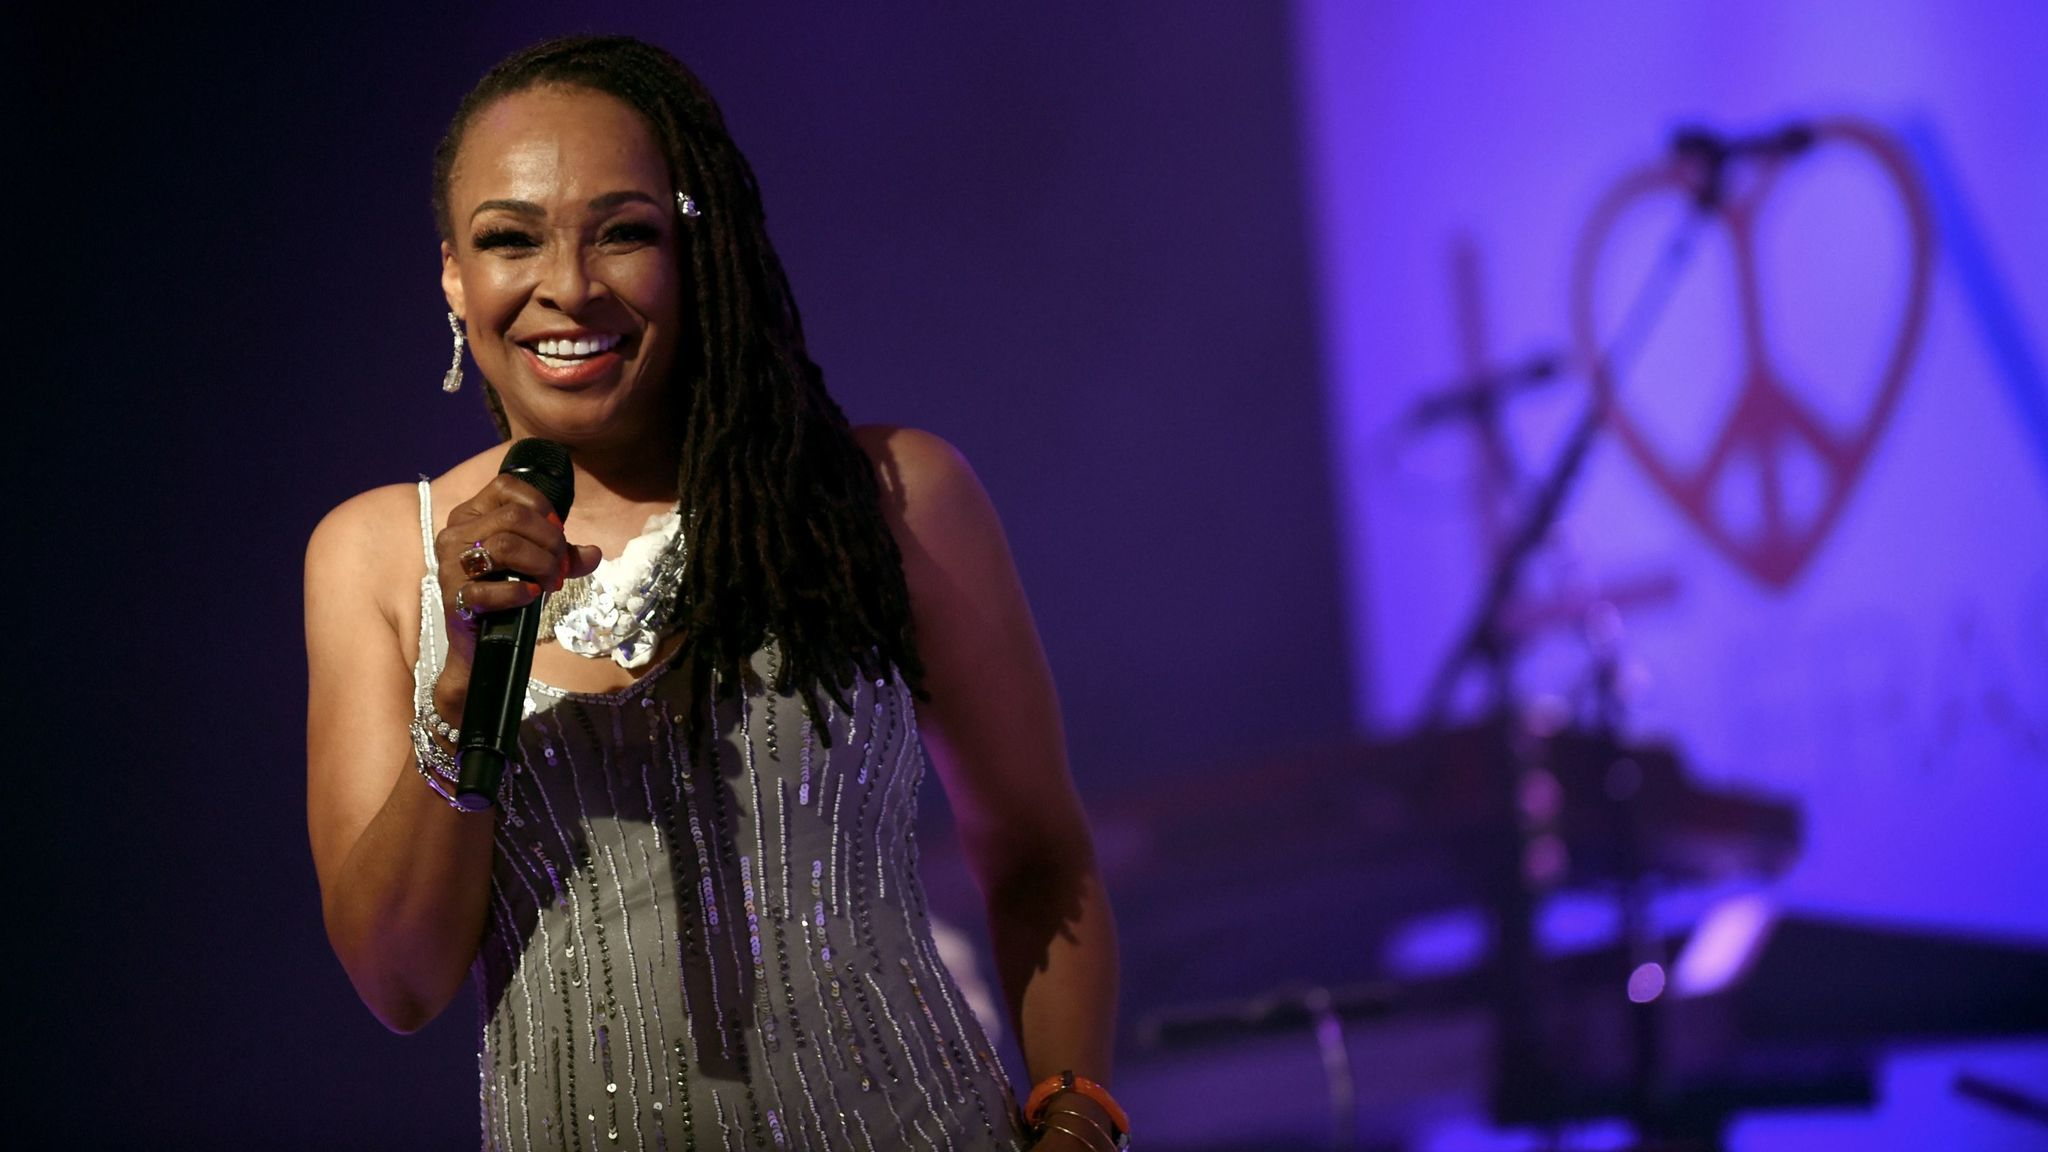 Siedah Garrett performs at the Race to Erase MS Gala at the Beverly Hilton.